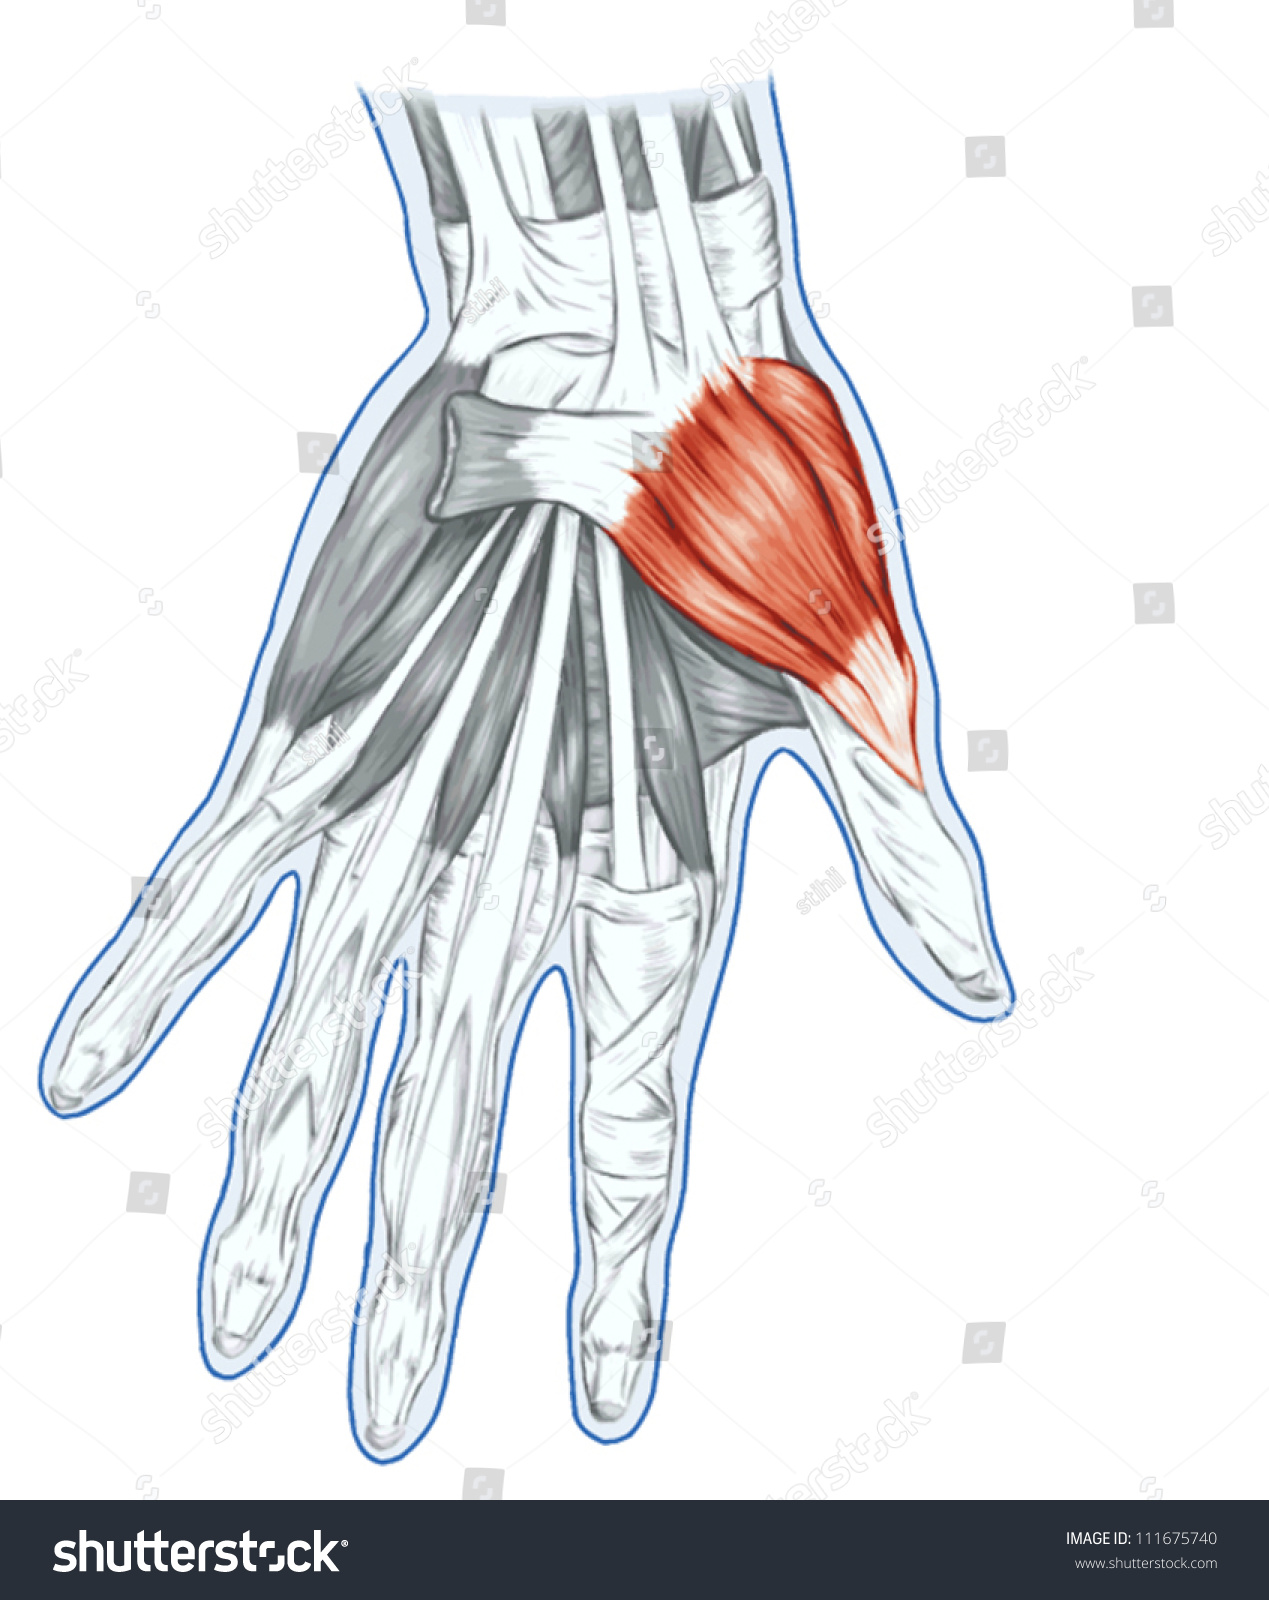 Anatomy Muscular System Hand Palm Muscle Stock Vector Royalty Free